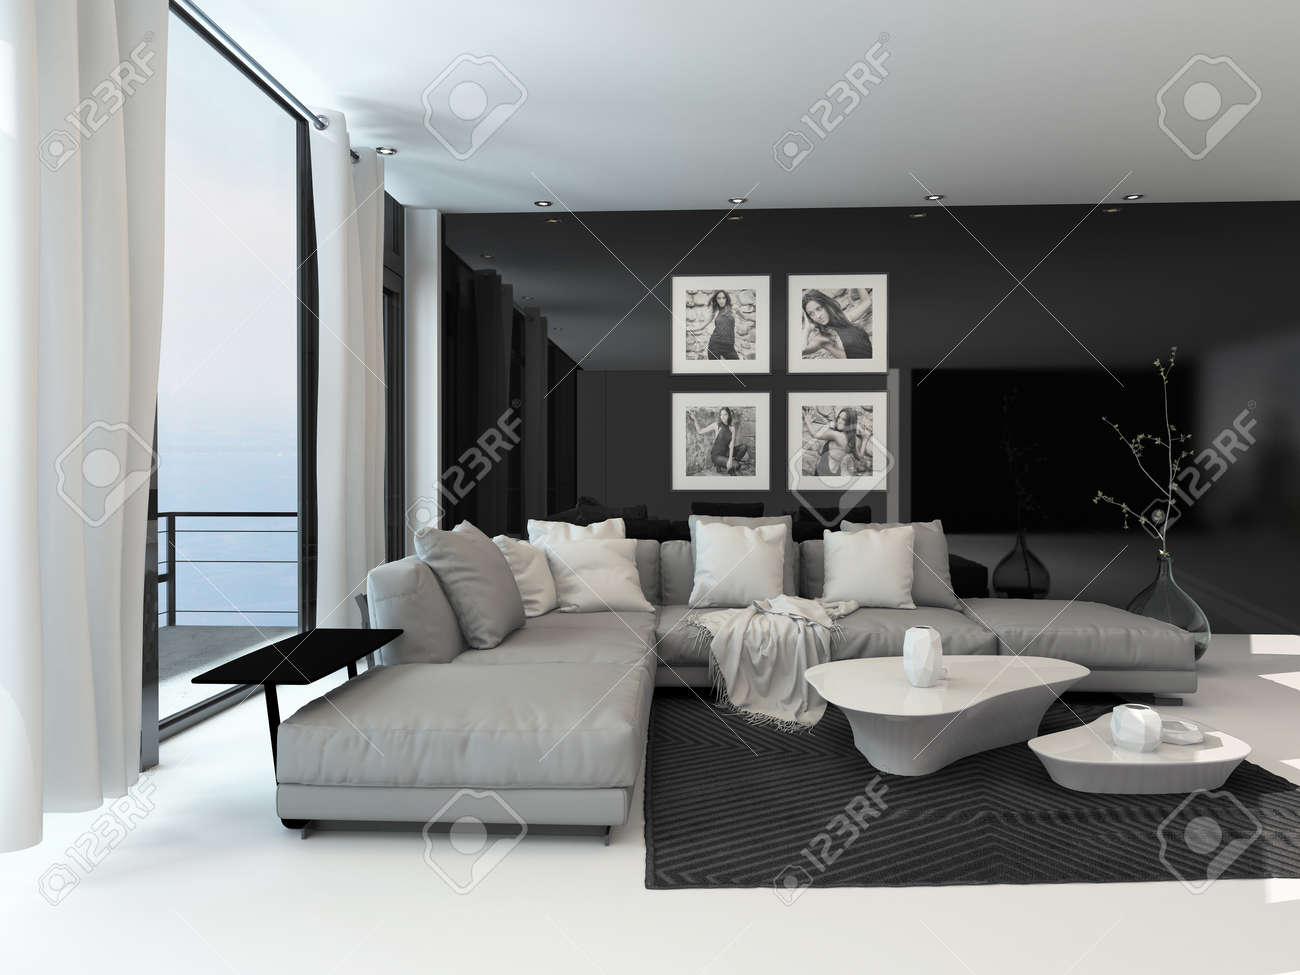 Lounge Interior With A Dark Accent Wall And Floor To Ceiling Stock Photo Picture And Royalty Free Image Image 30158920